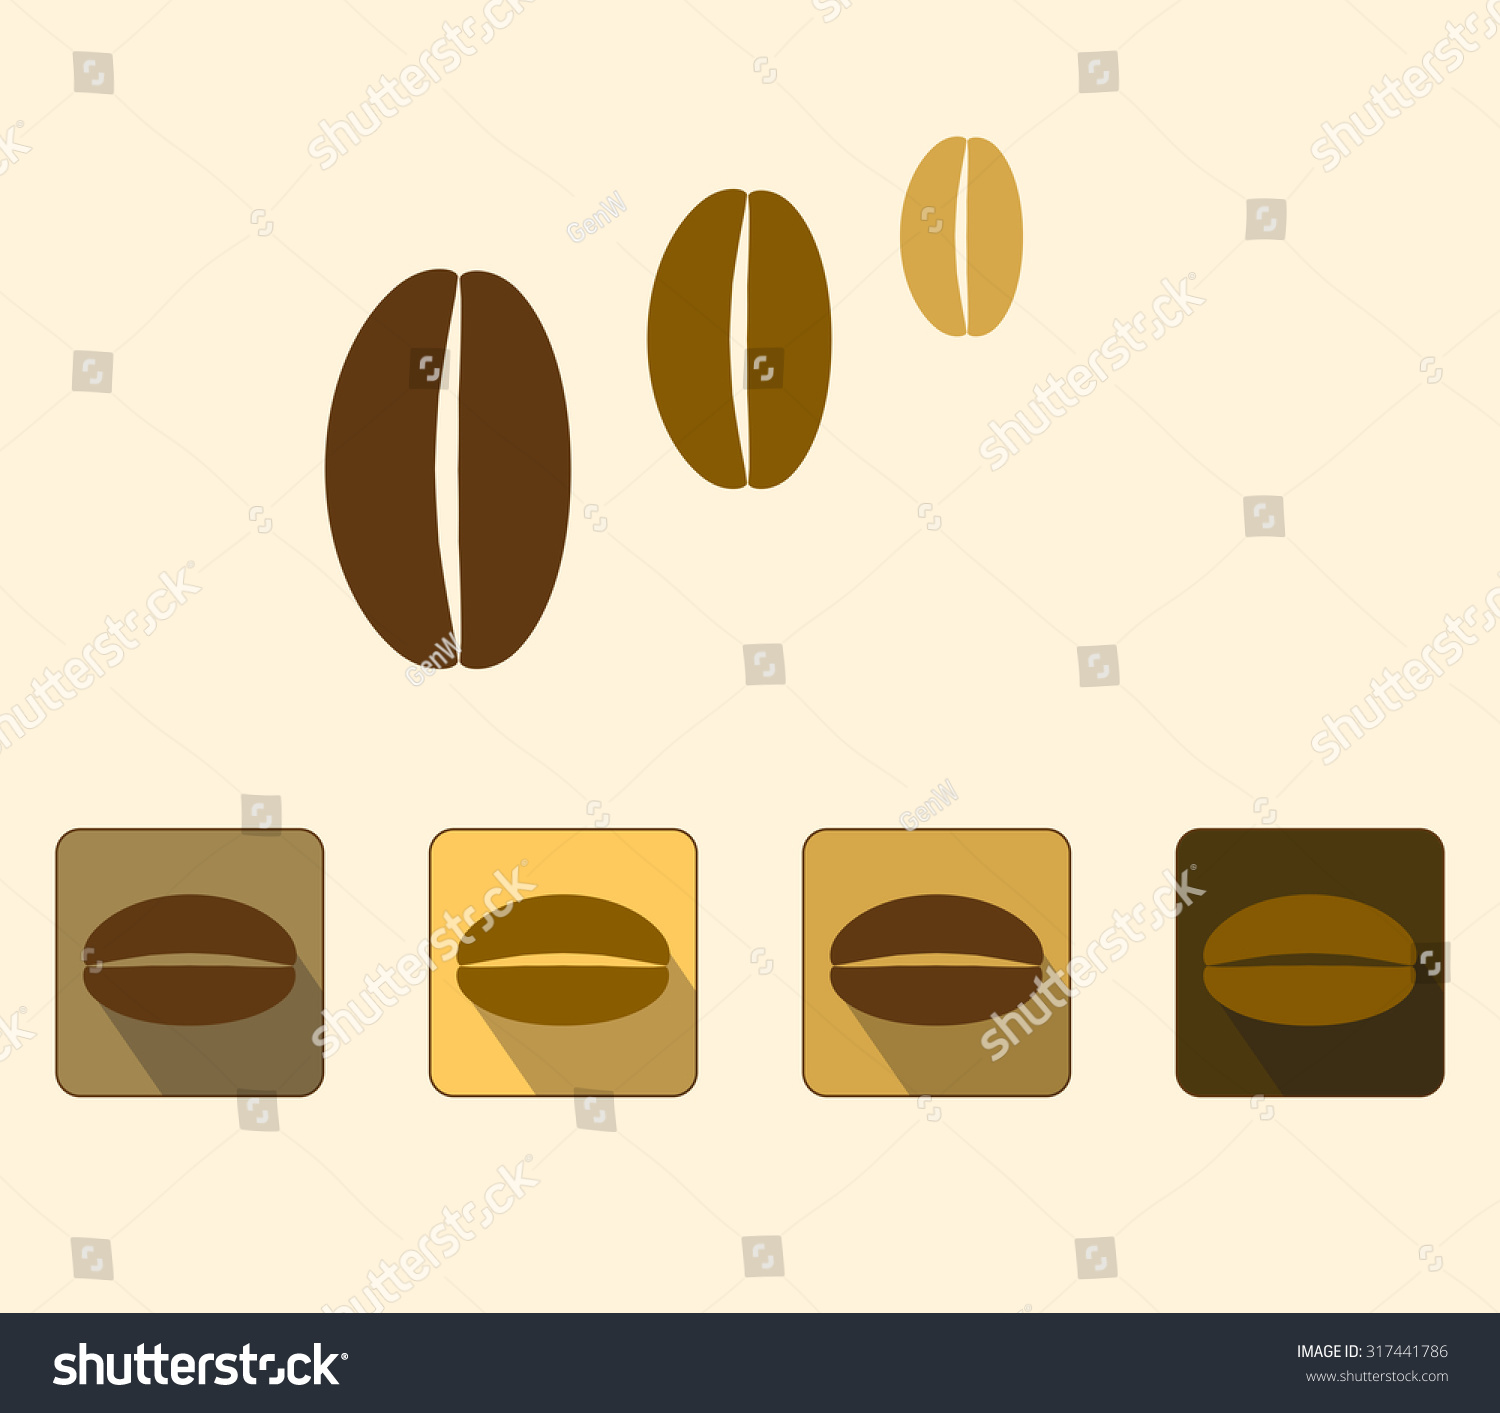 coffee beans flat coffee bean icons stock vector royalty free 317441786 https www shutterstock com image vector coffee beans flat bean icons shadow 317441786